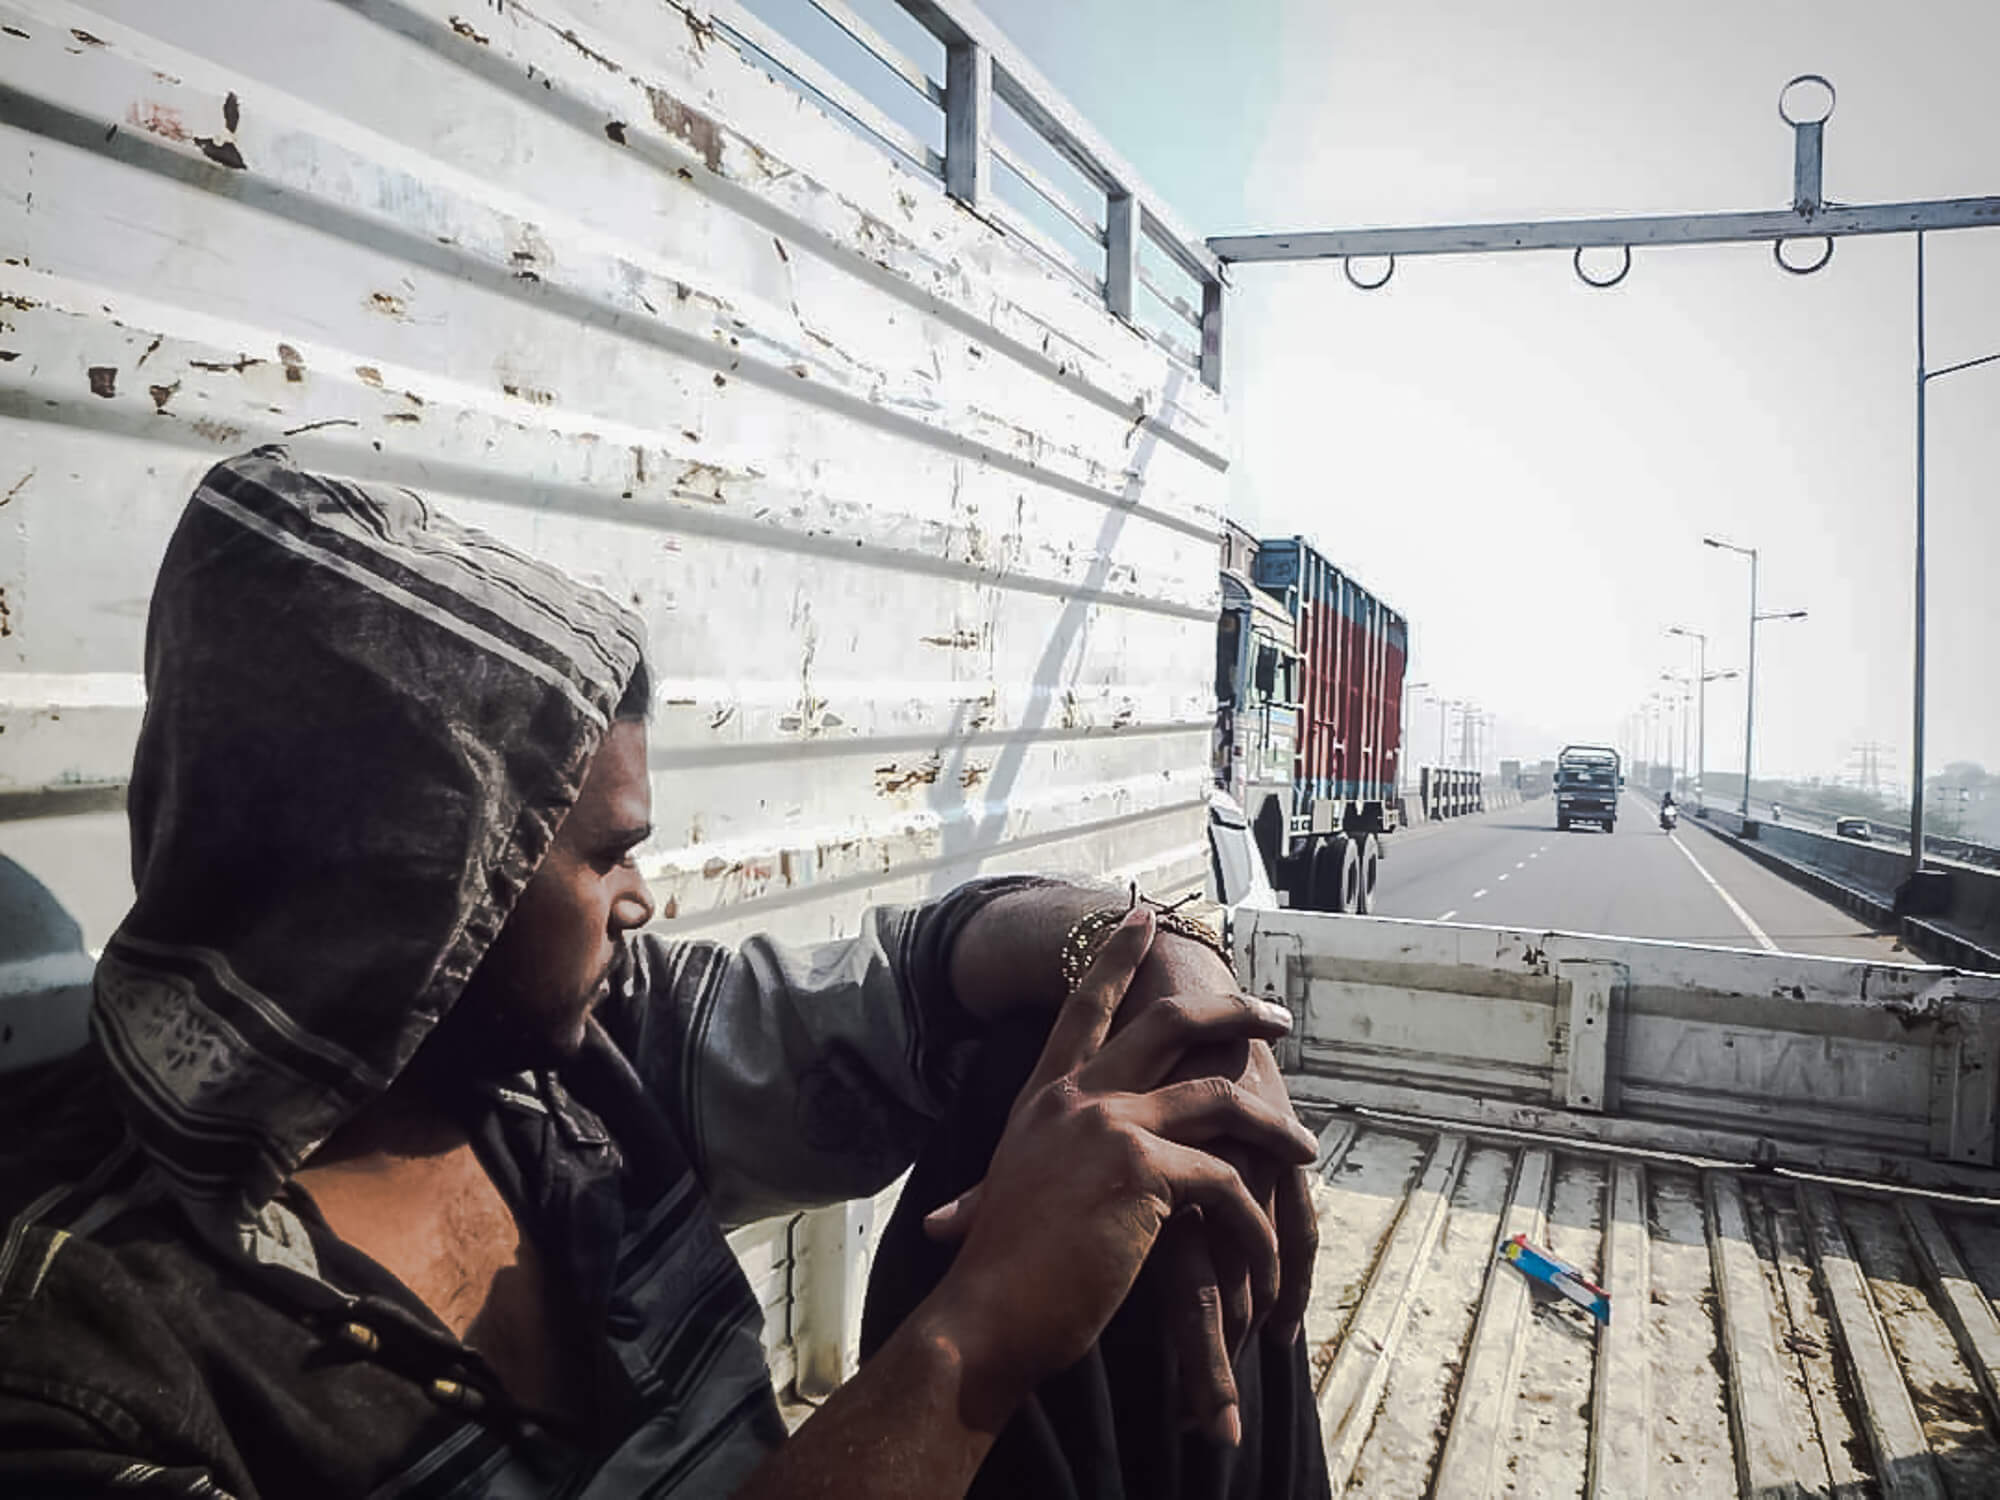 A man rides in a truck after finding a travel partner to hitchhike India with